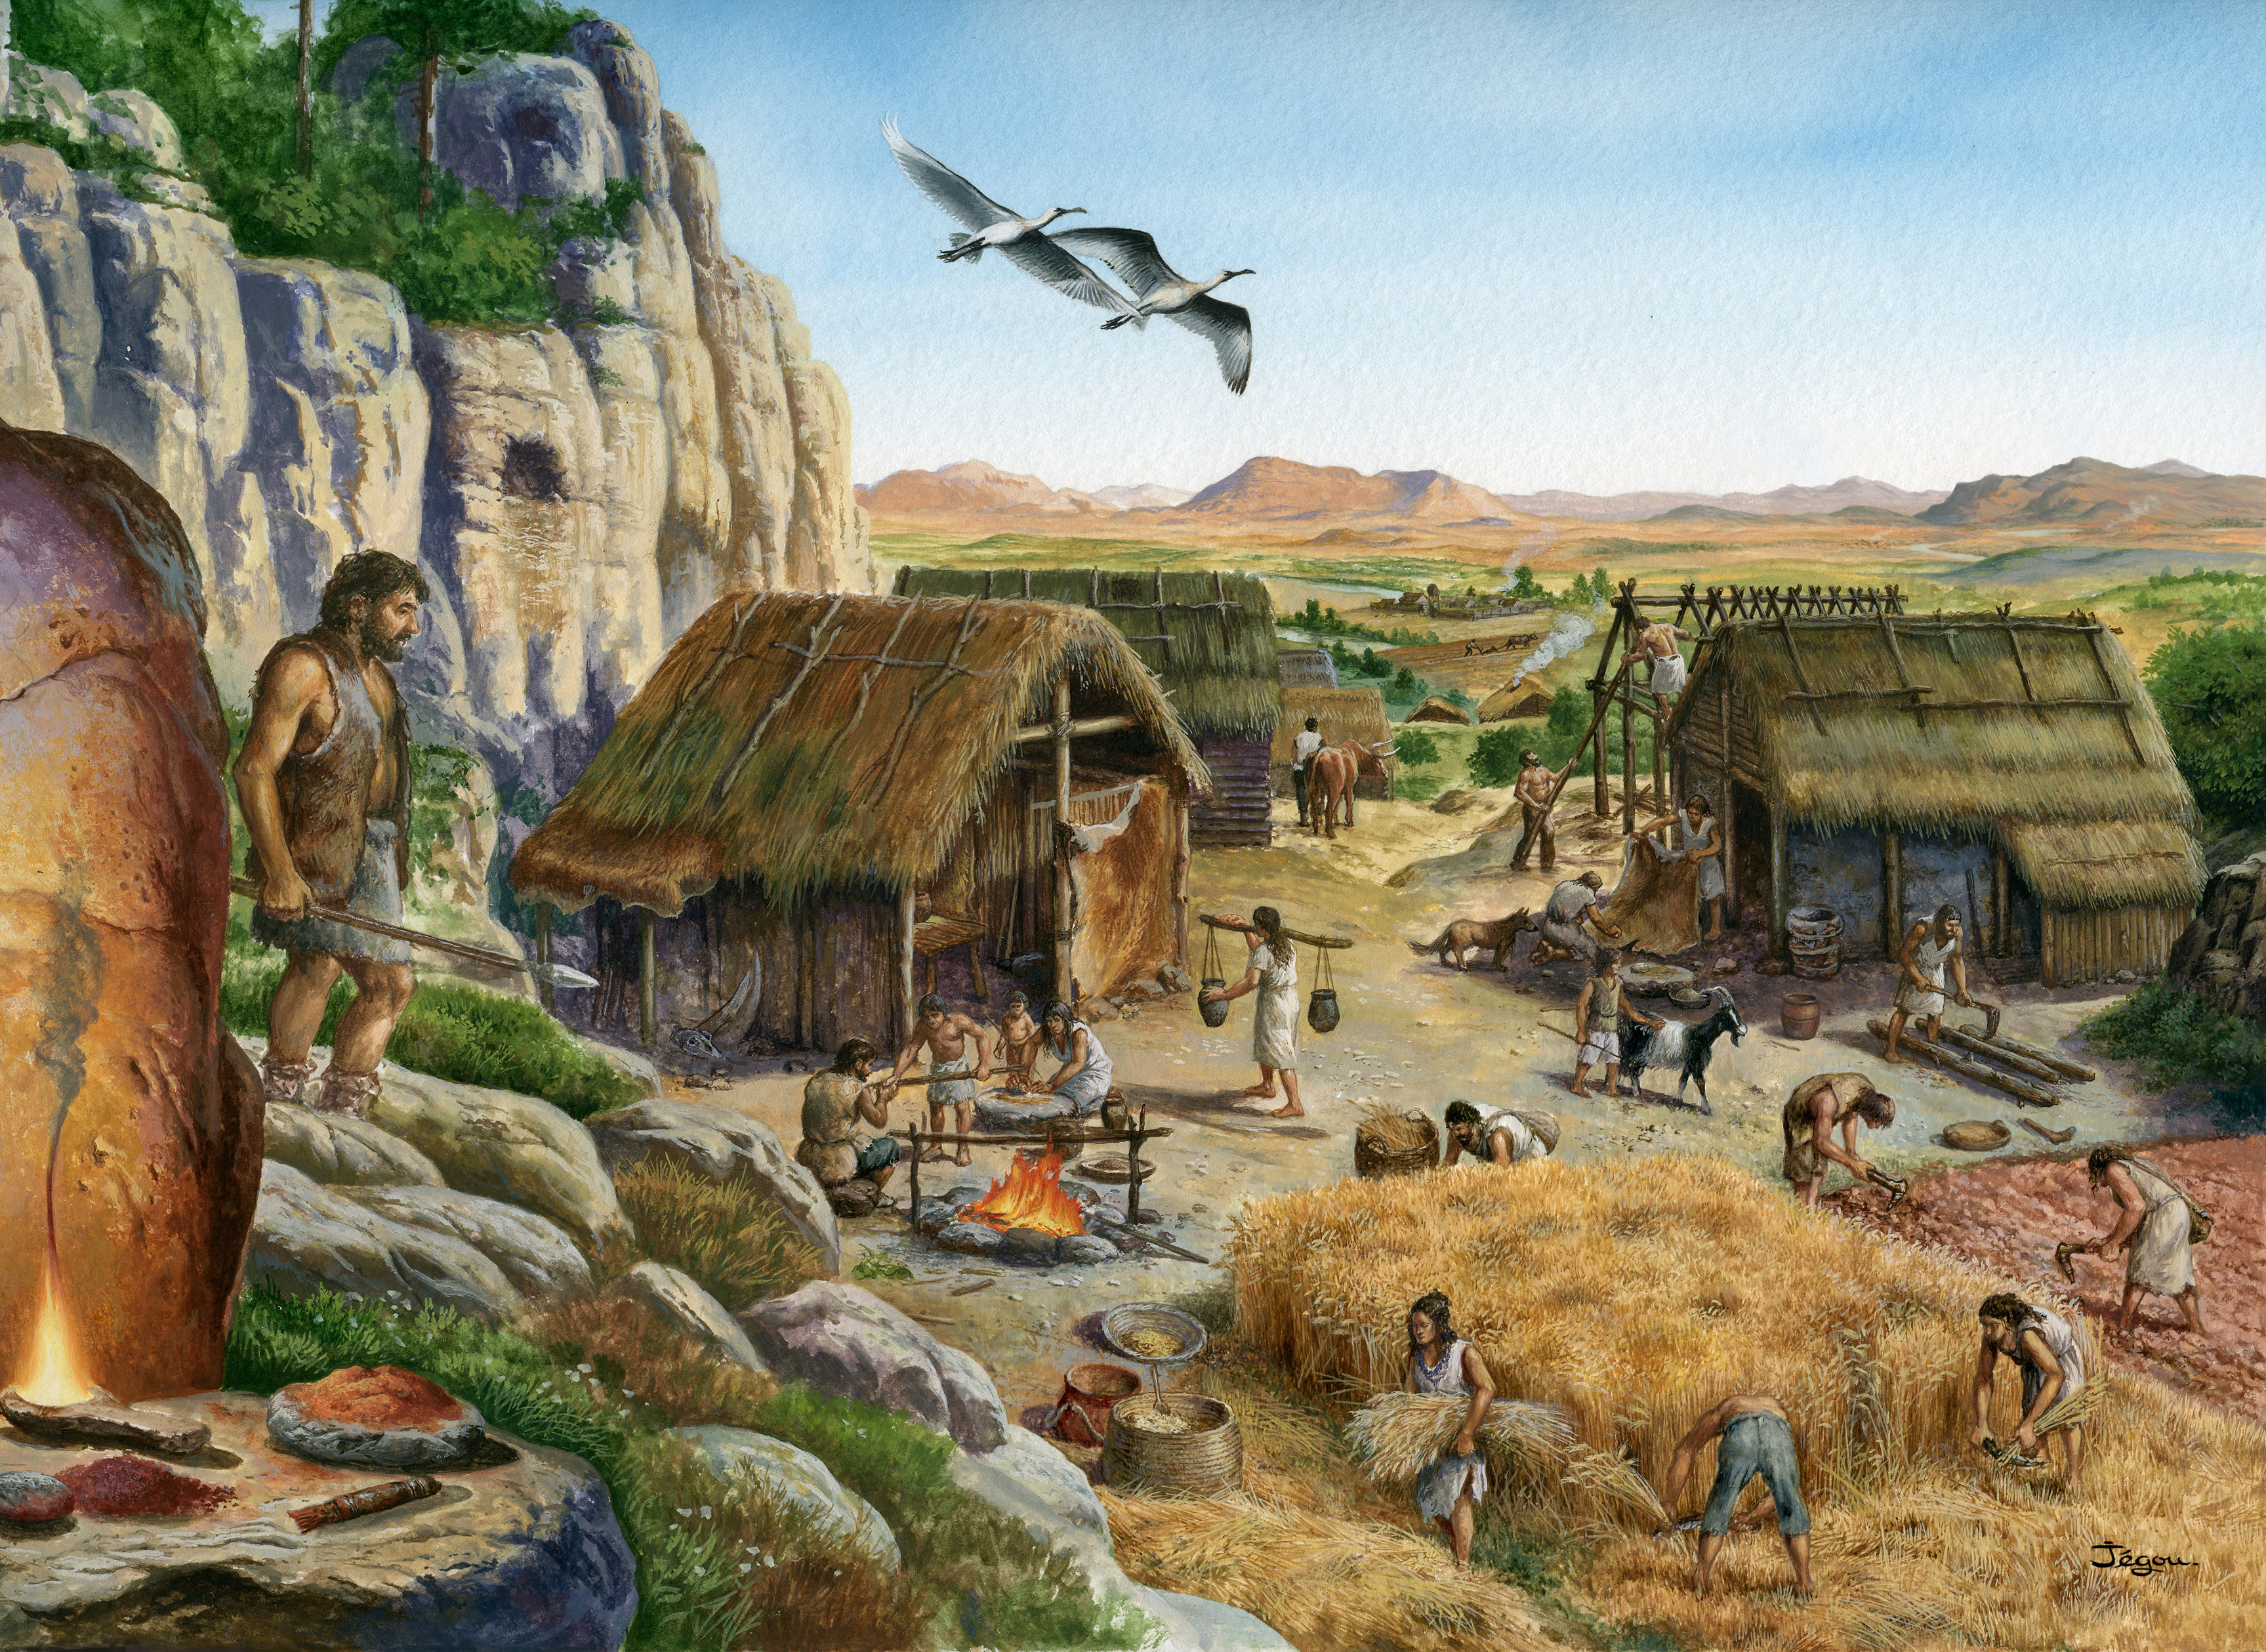 Agriculture and animal husbandry started in the Near East region at about 12 000 years ago. Image: Christian Jegou.